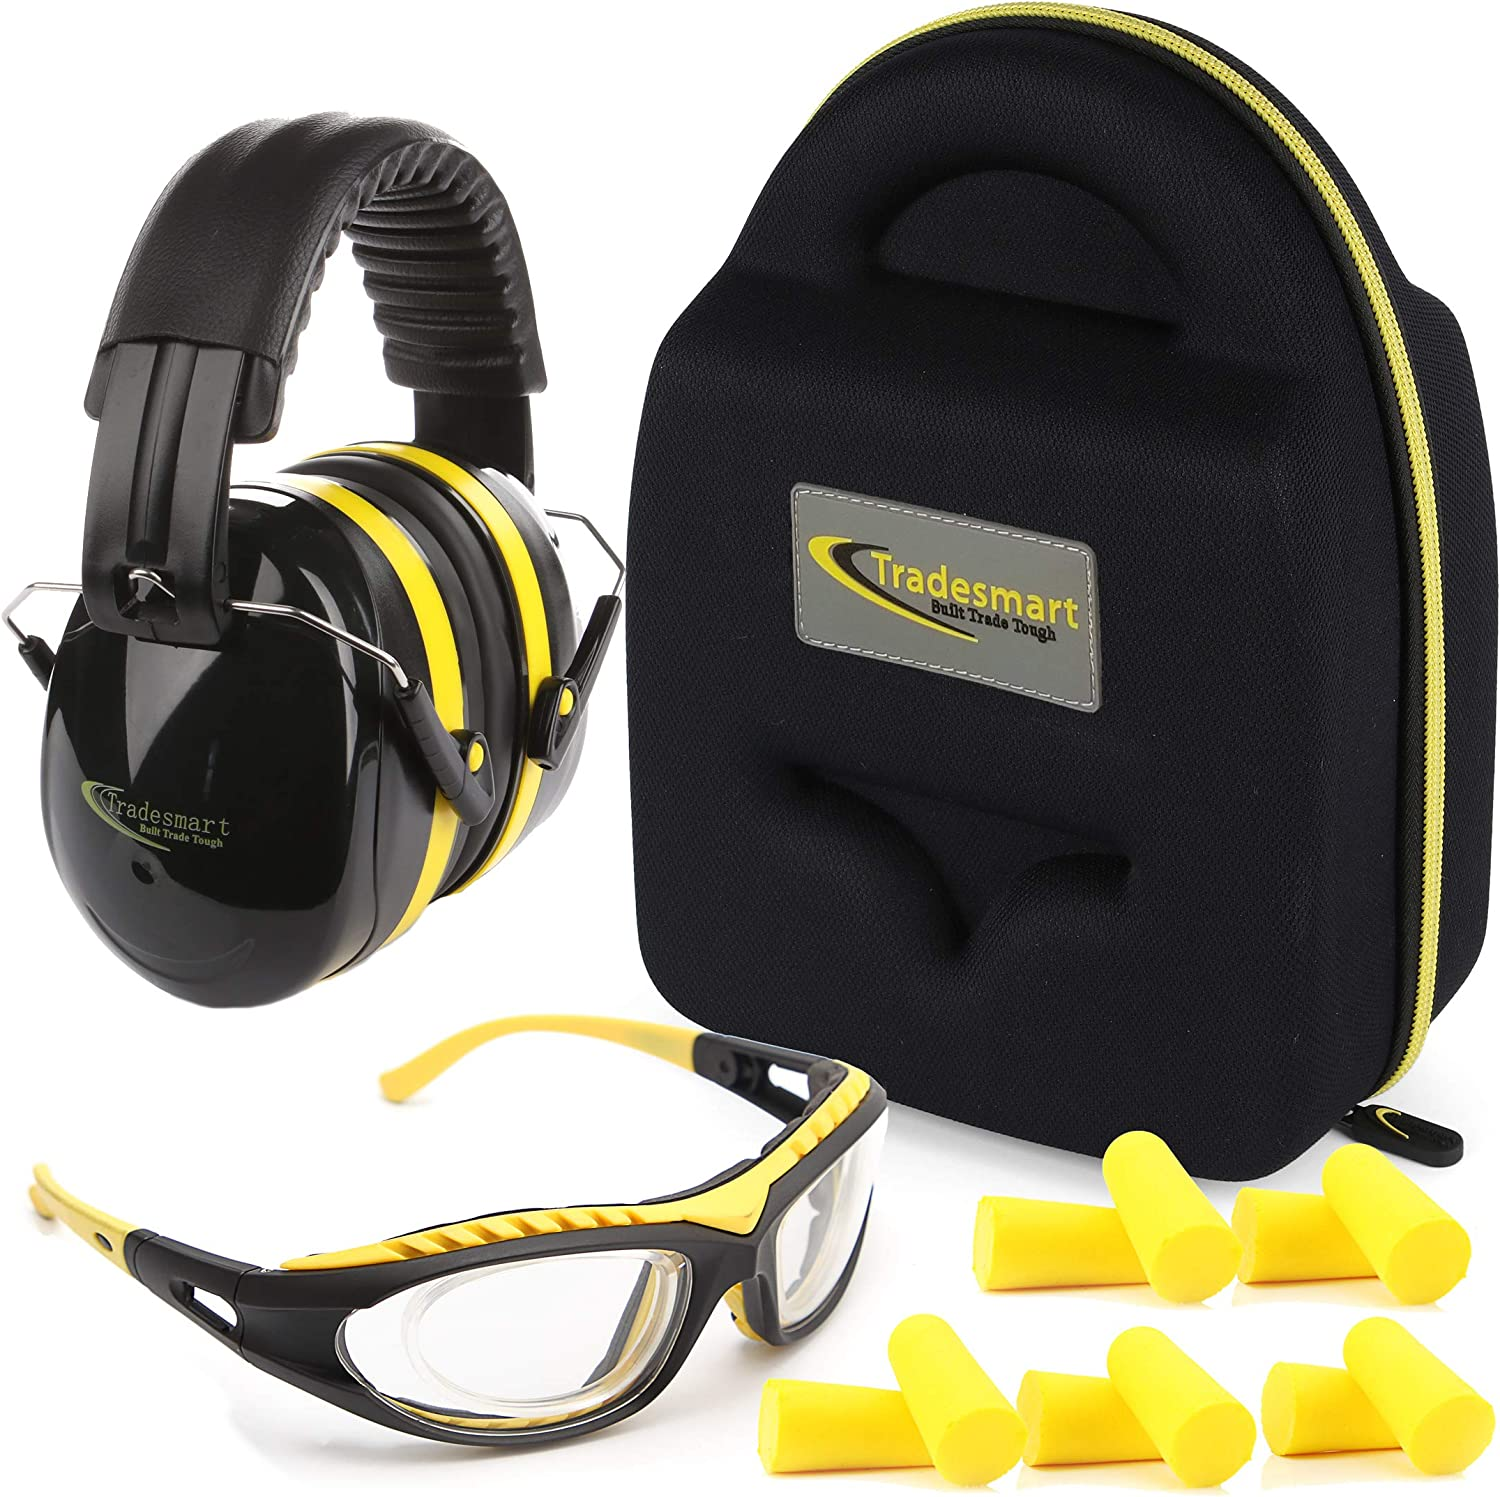 TRADESMART Shooting Range Earmuffs and Glasses – Safety Eye and Ear Protection